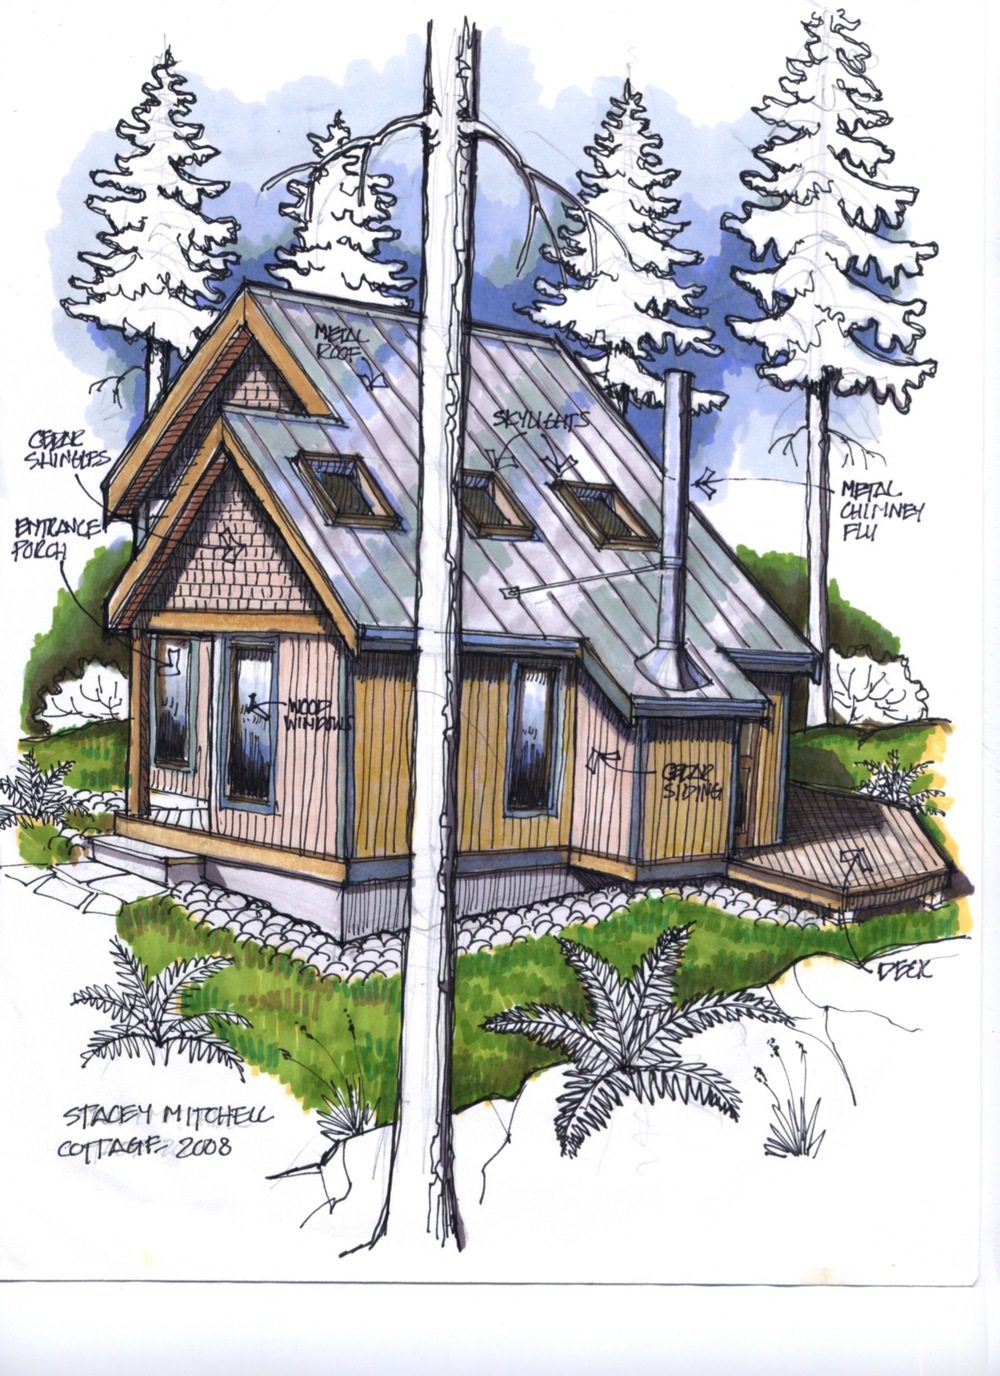 mitchell cottage concept sketch.jpg